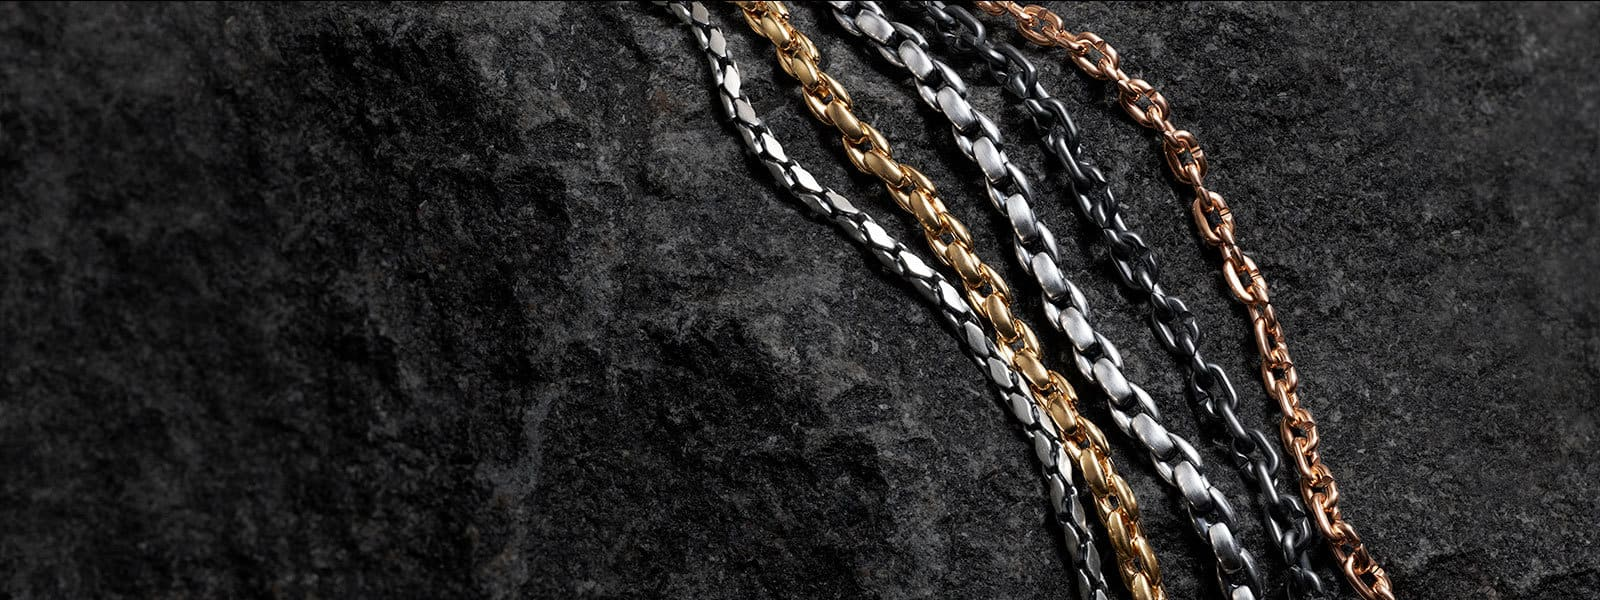 Fluted-chain necklace in sterling silver, elongated box-chain necklaces in 18K yellow gold and sterling silver and link-chain necklaces in black titanium with sterling silver and 18K rose gold on a stone.